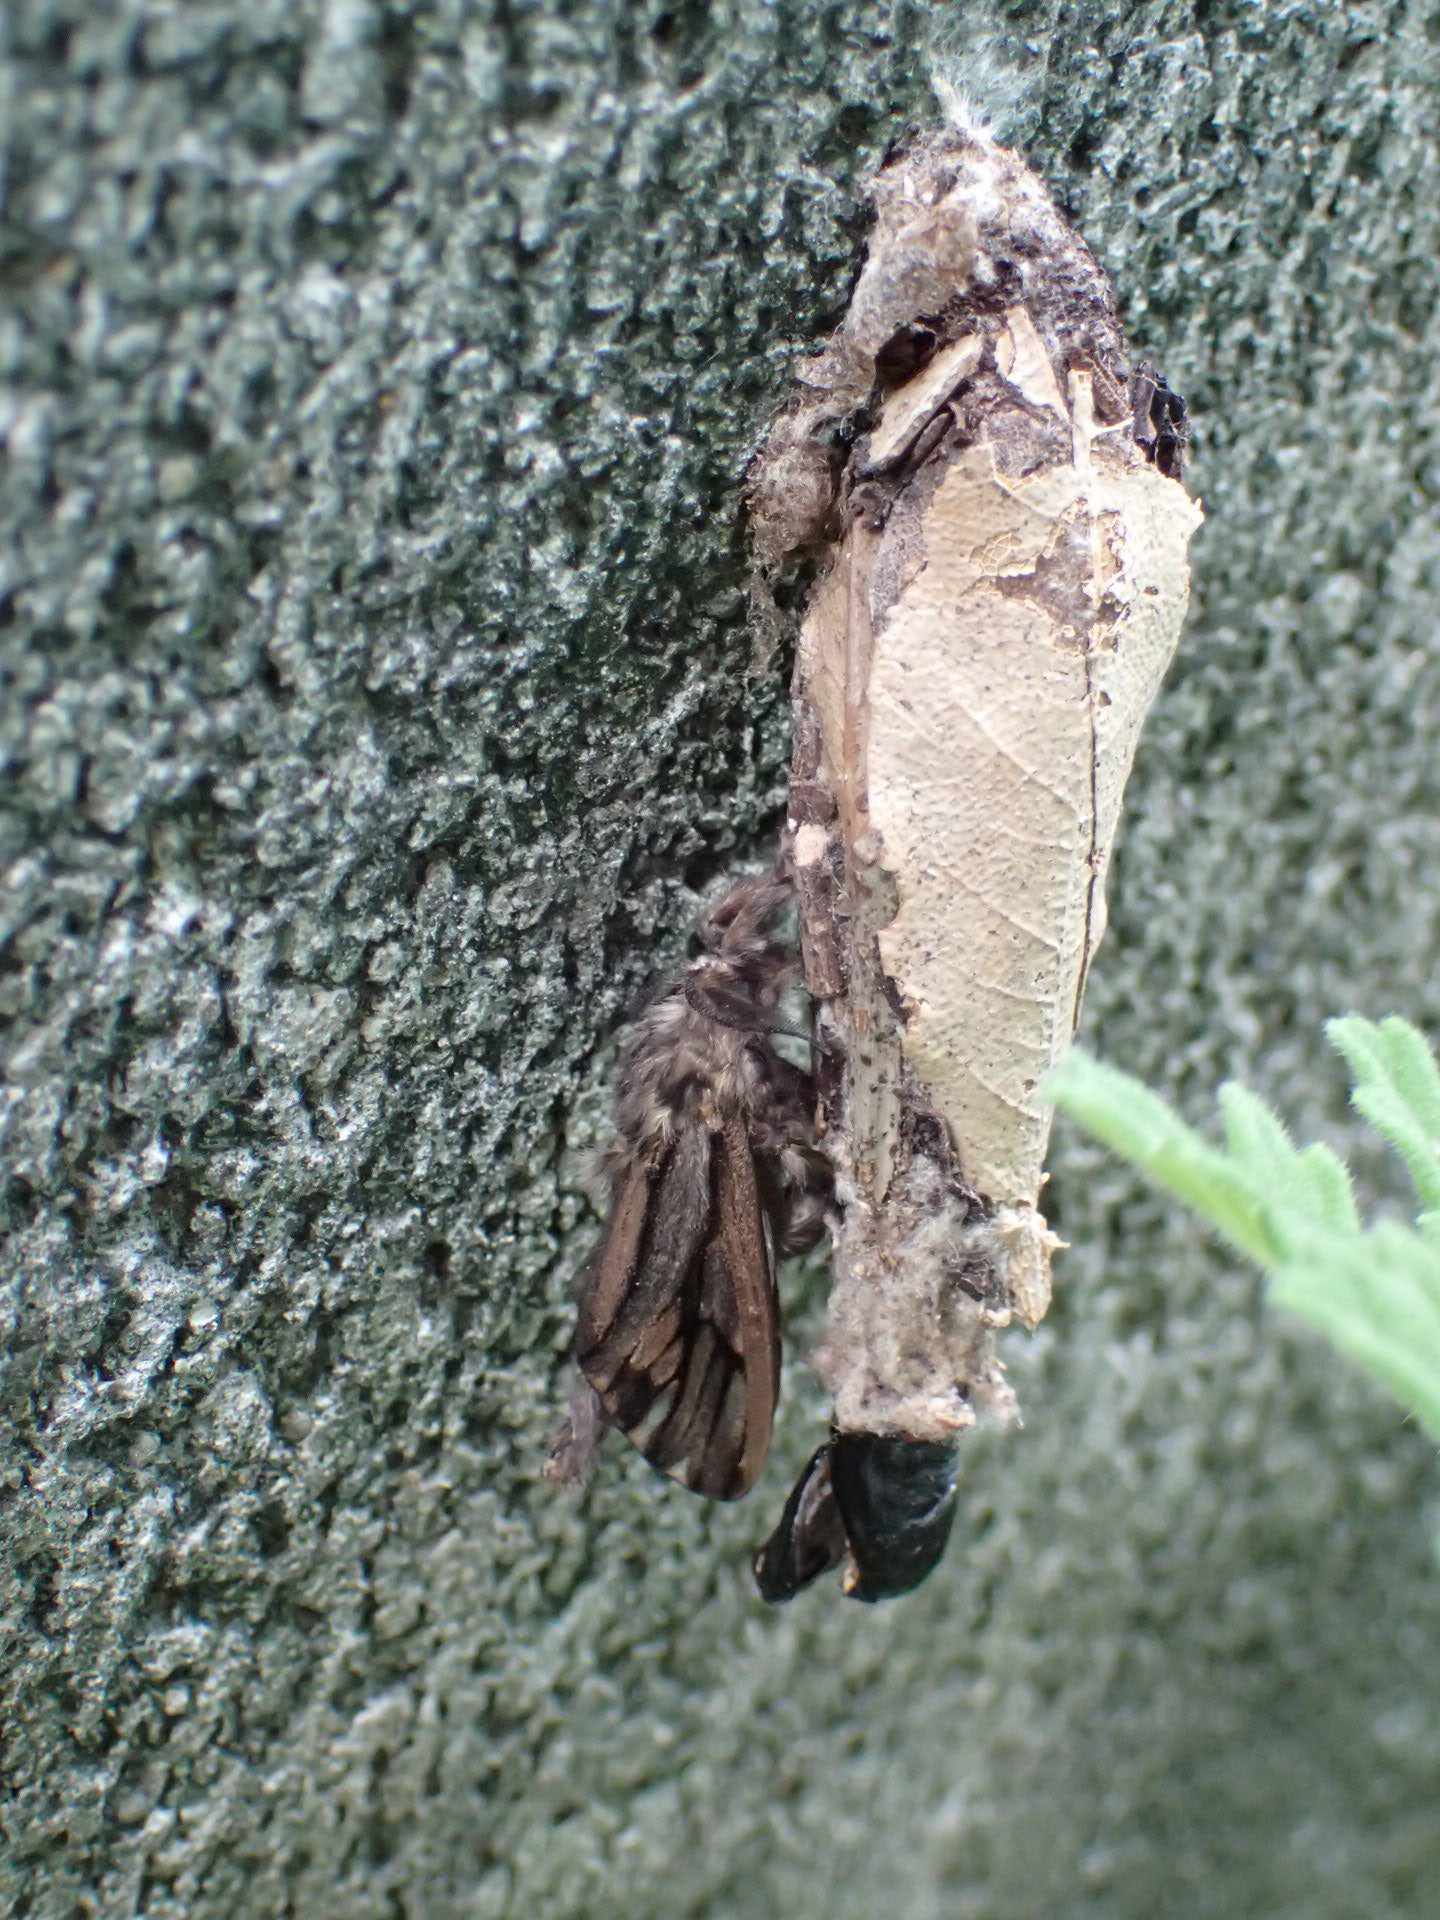 Bagworm moth (Eumeta variegata) with its protective case.